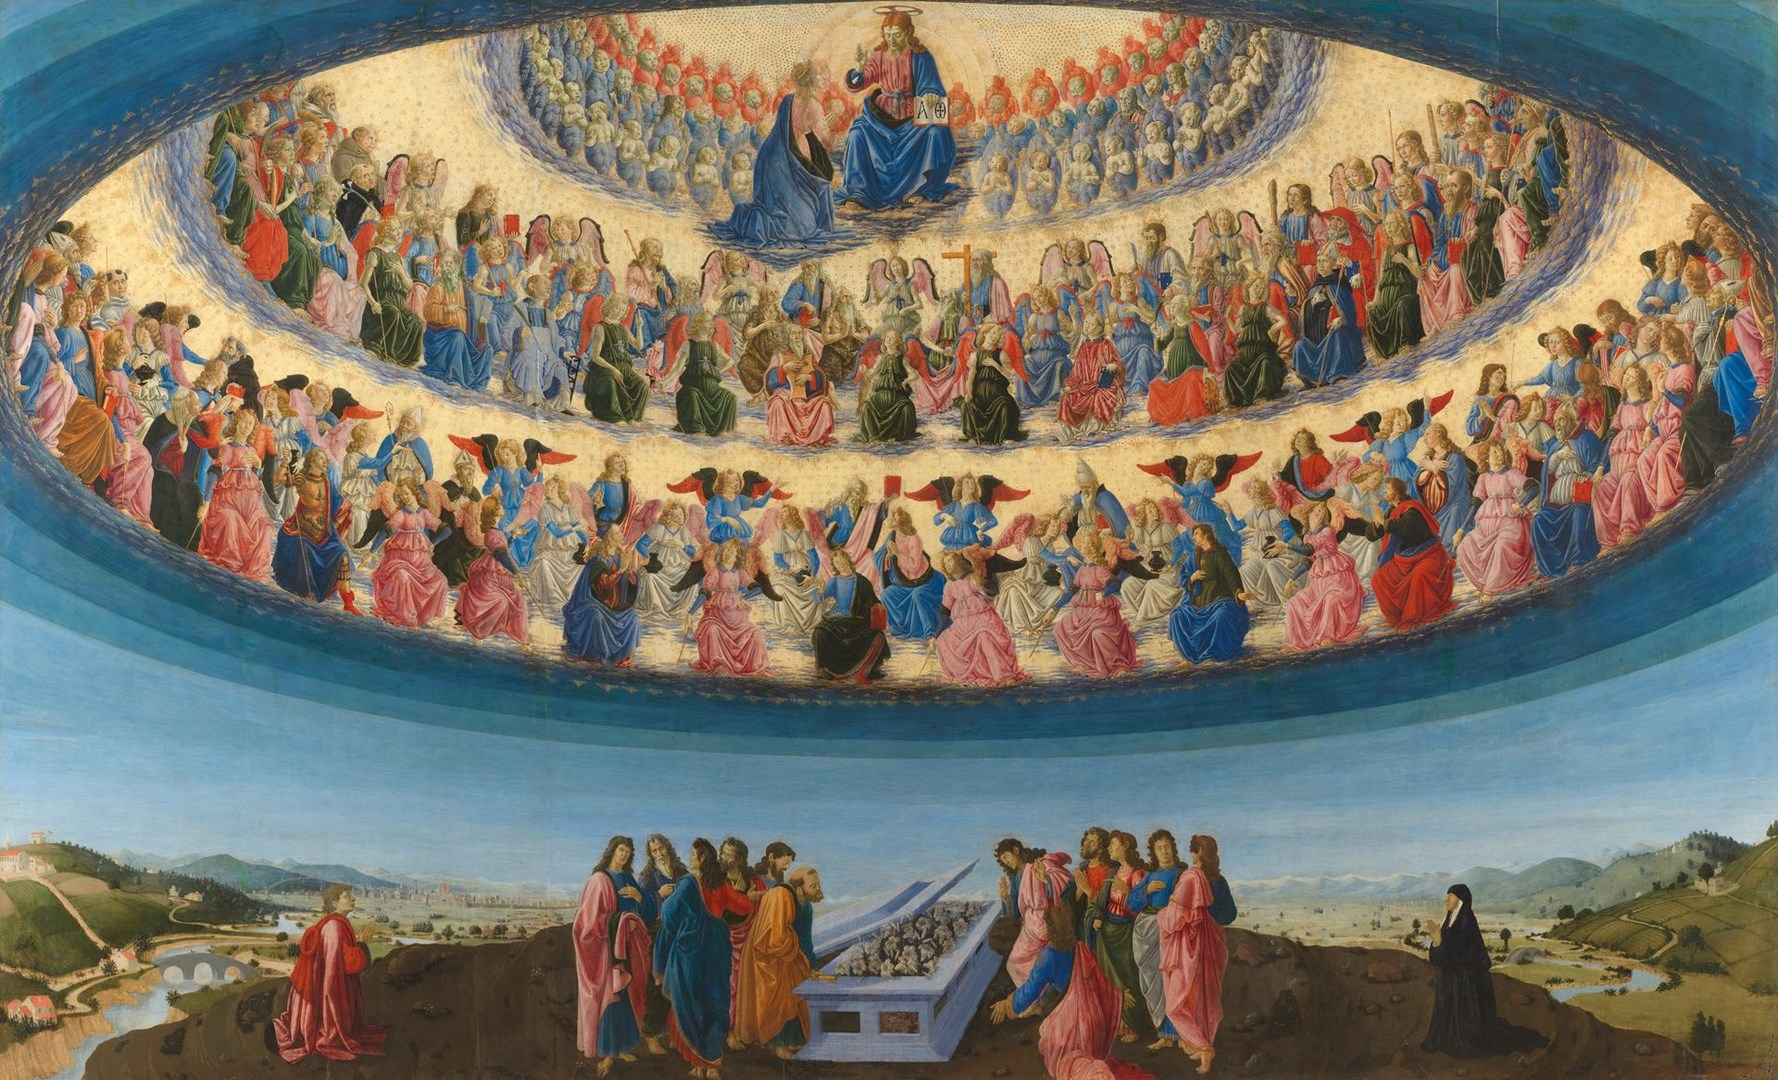 The Assumption of the Virgin by Francesco Botticini